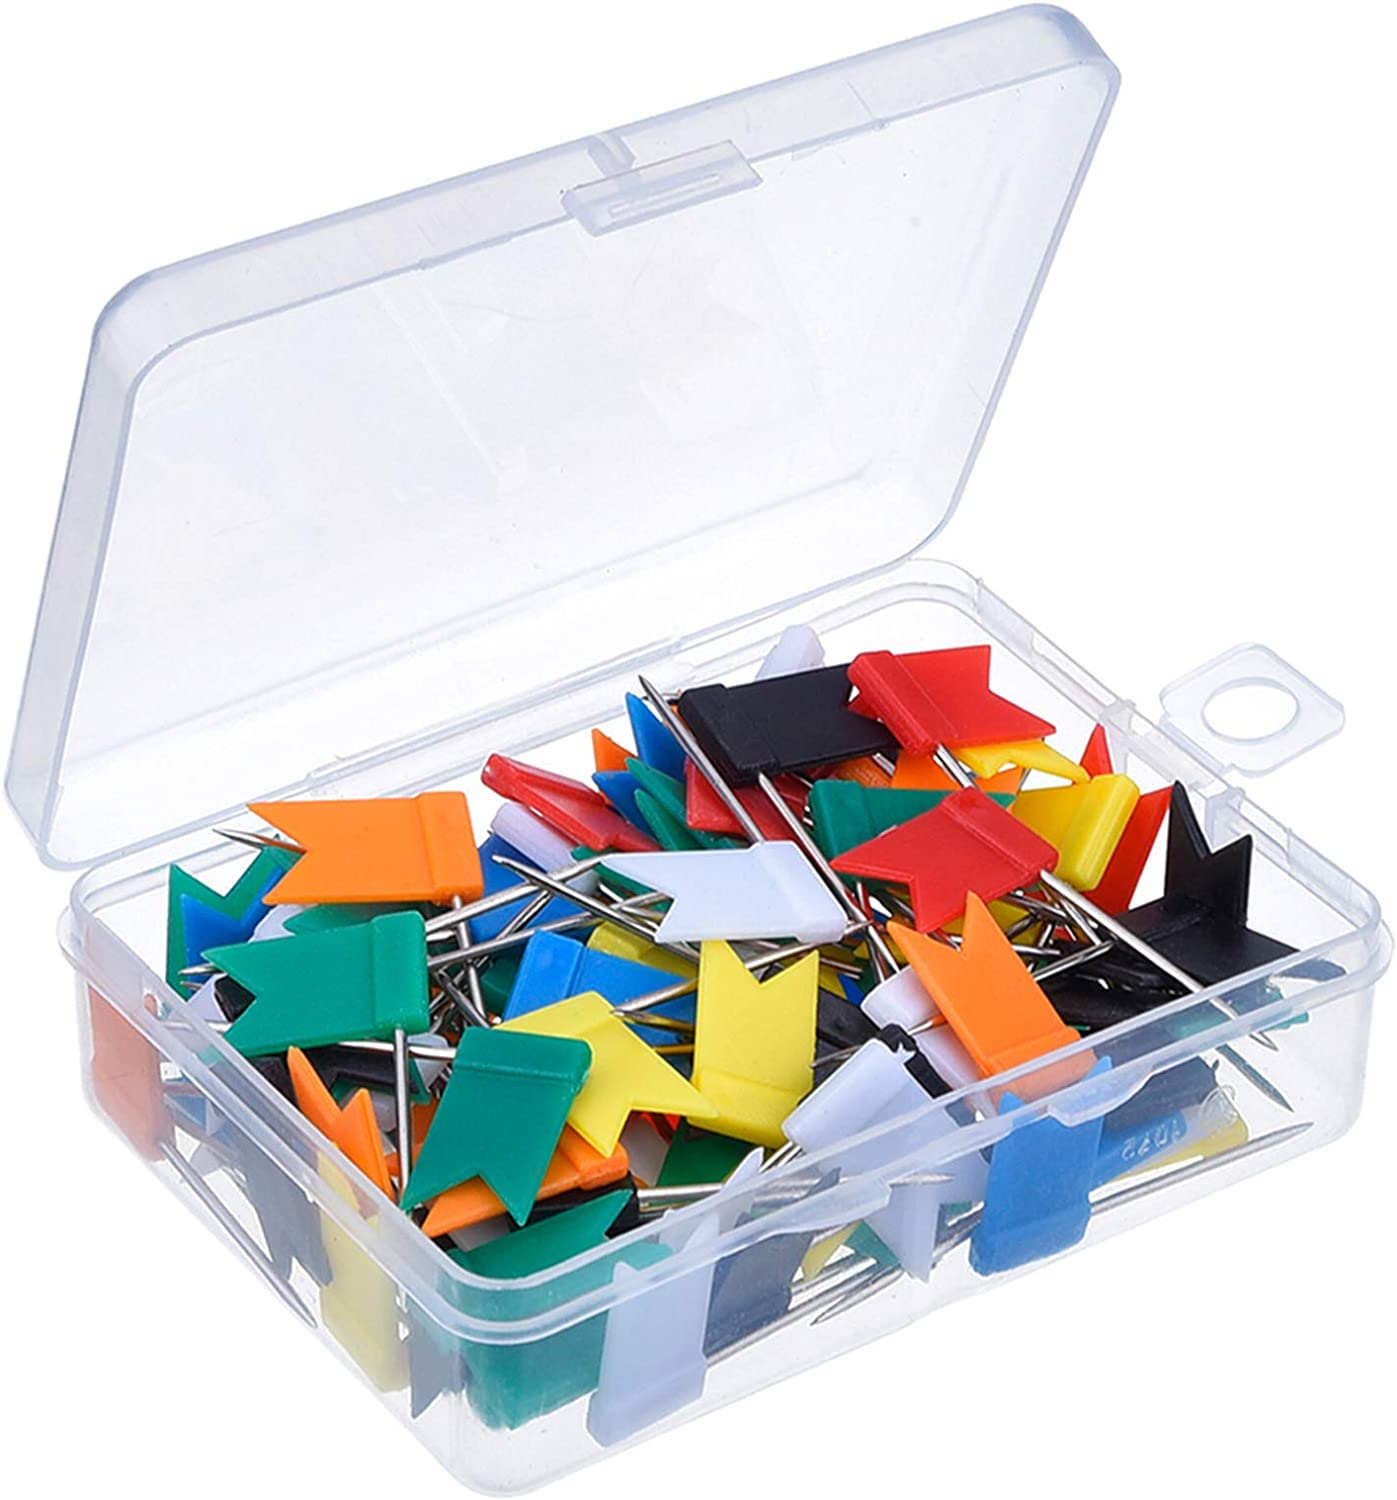 Outus 100 Pieces Map Flag Push Pins Tacks, Assorted 7 Colors